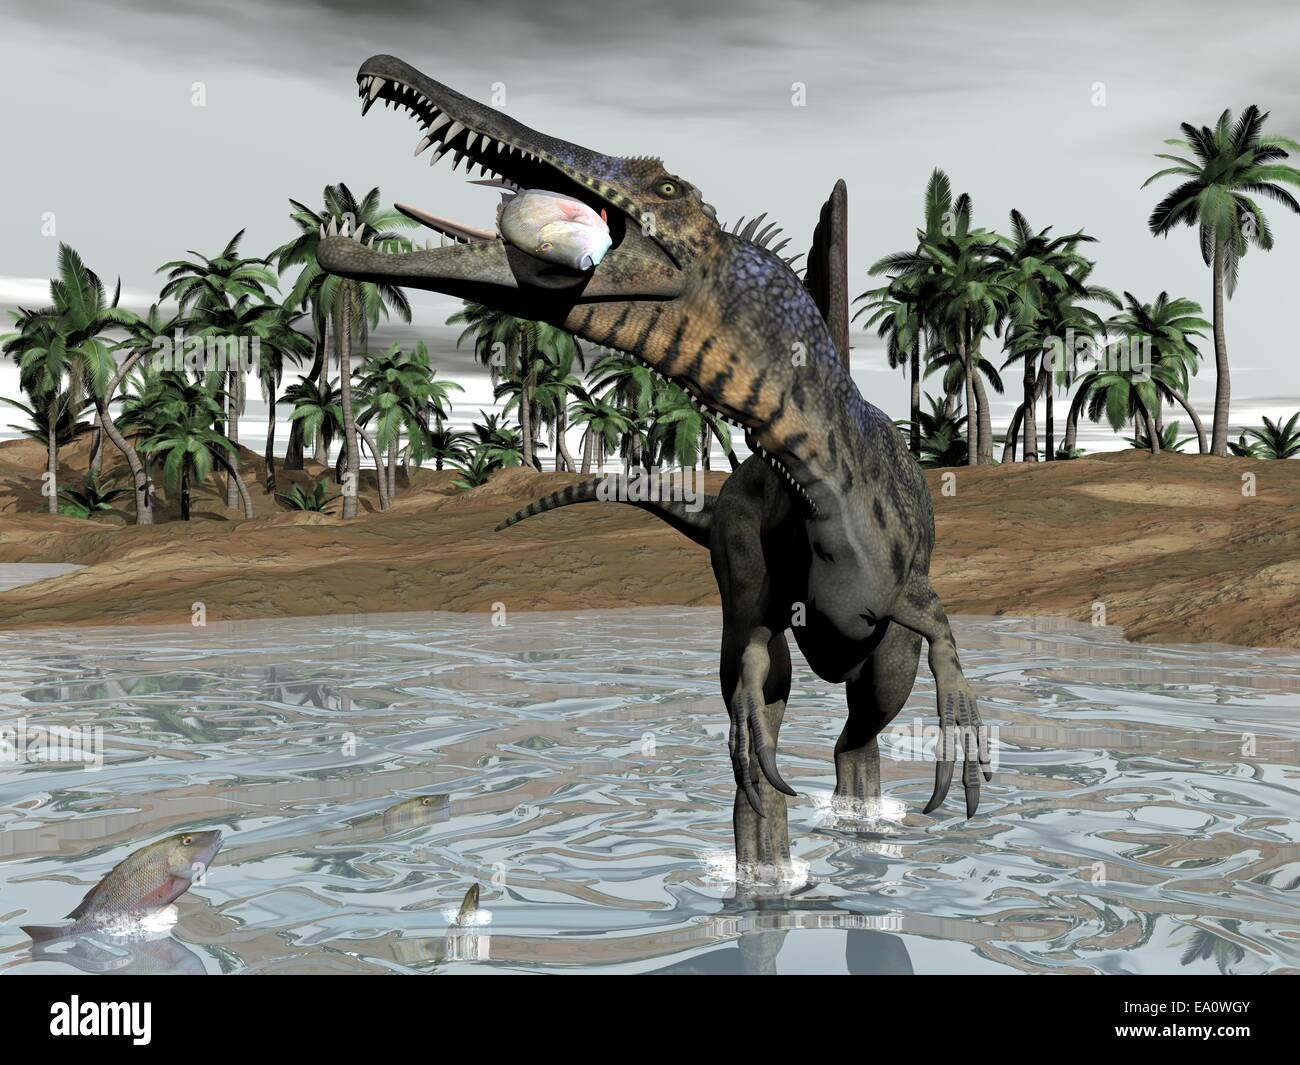 Spinosaurus dinosaur eating fish - 3D render - Stock Image